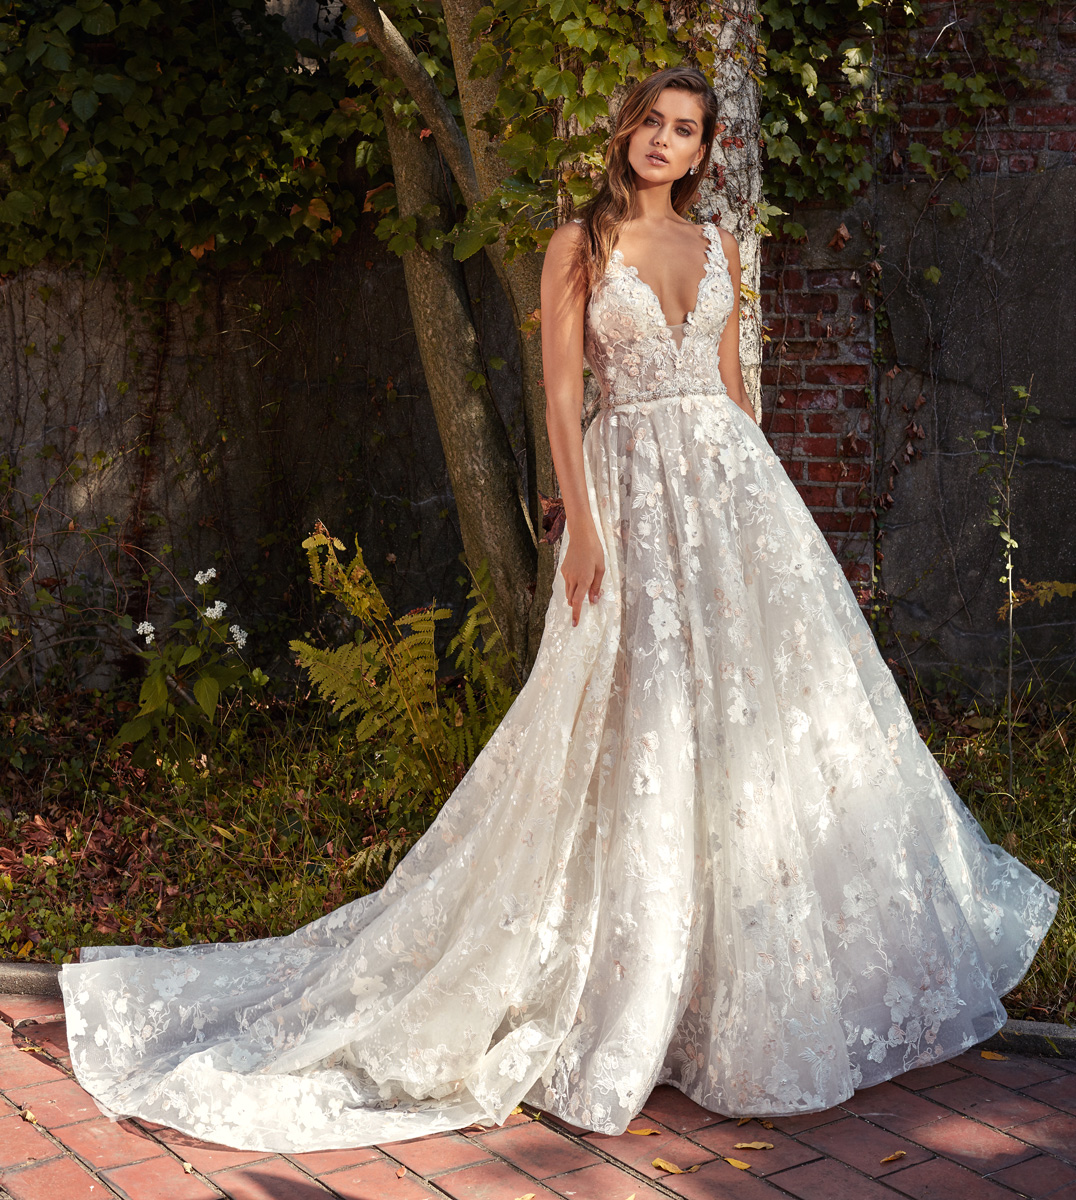 Shop Wedding Gowns: Designer Gowns From StarDust Celebrations